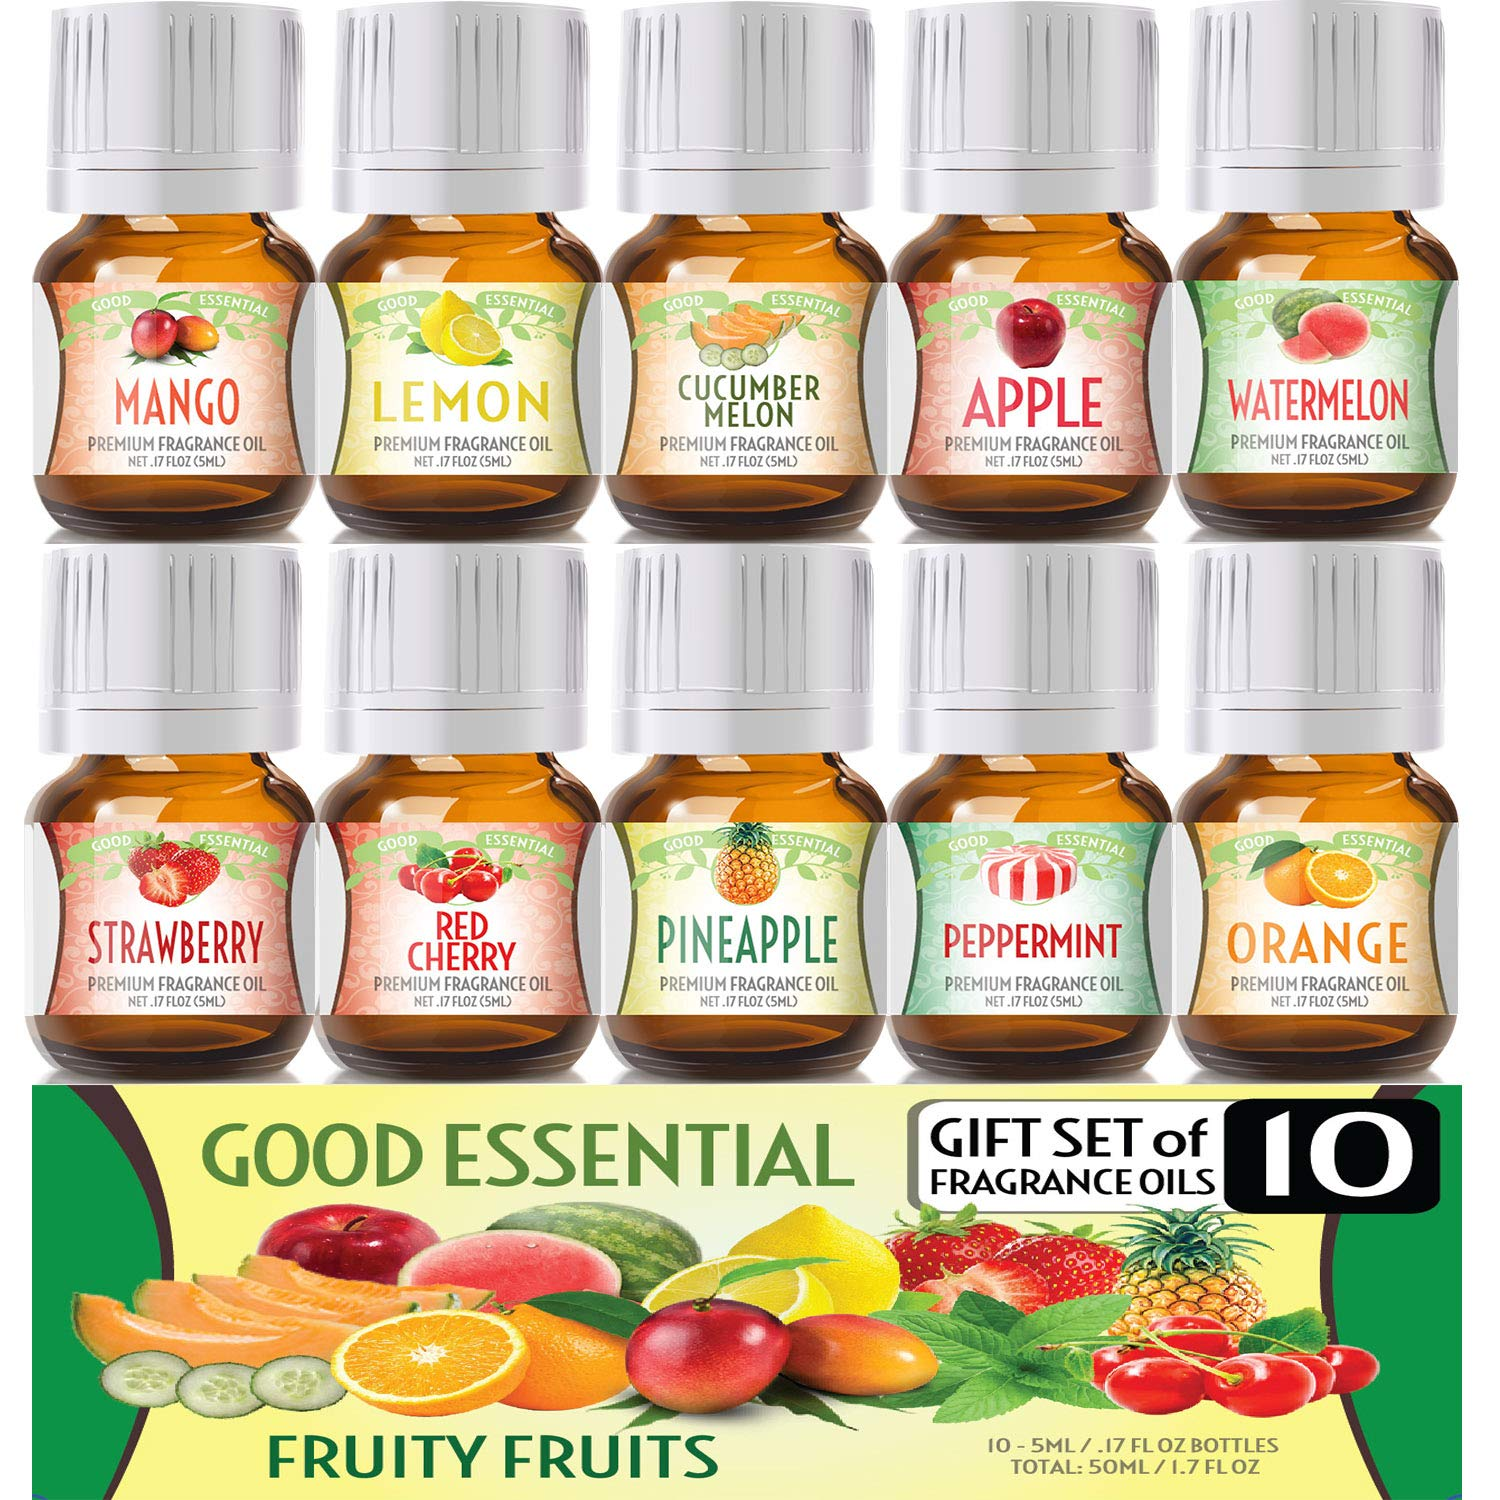 Fruity Fruits Good Essential Fragrance Oil Set (PACK OF 10) 5ml Set Includes Strawberry, Apple, Watermelon, Pineapple, Cucumber Melon, Red Cherry, Mango, Peppermint, Lemon, and Orange essential oils ESSENTIAL OILS – THE BEST PICKS FOR A GOOD HEALTH AND SLEEP HELP 814orH N1yL